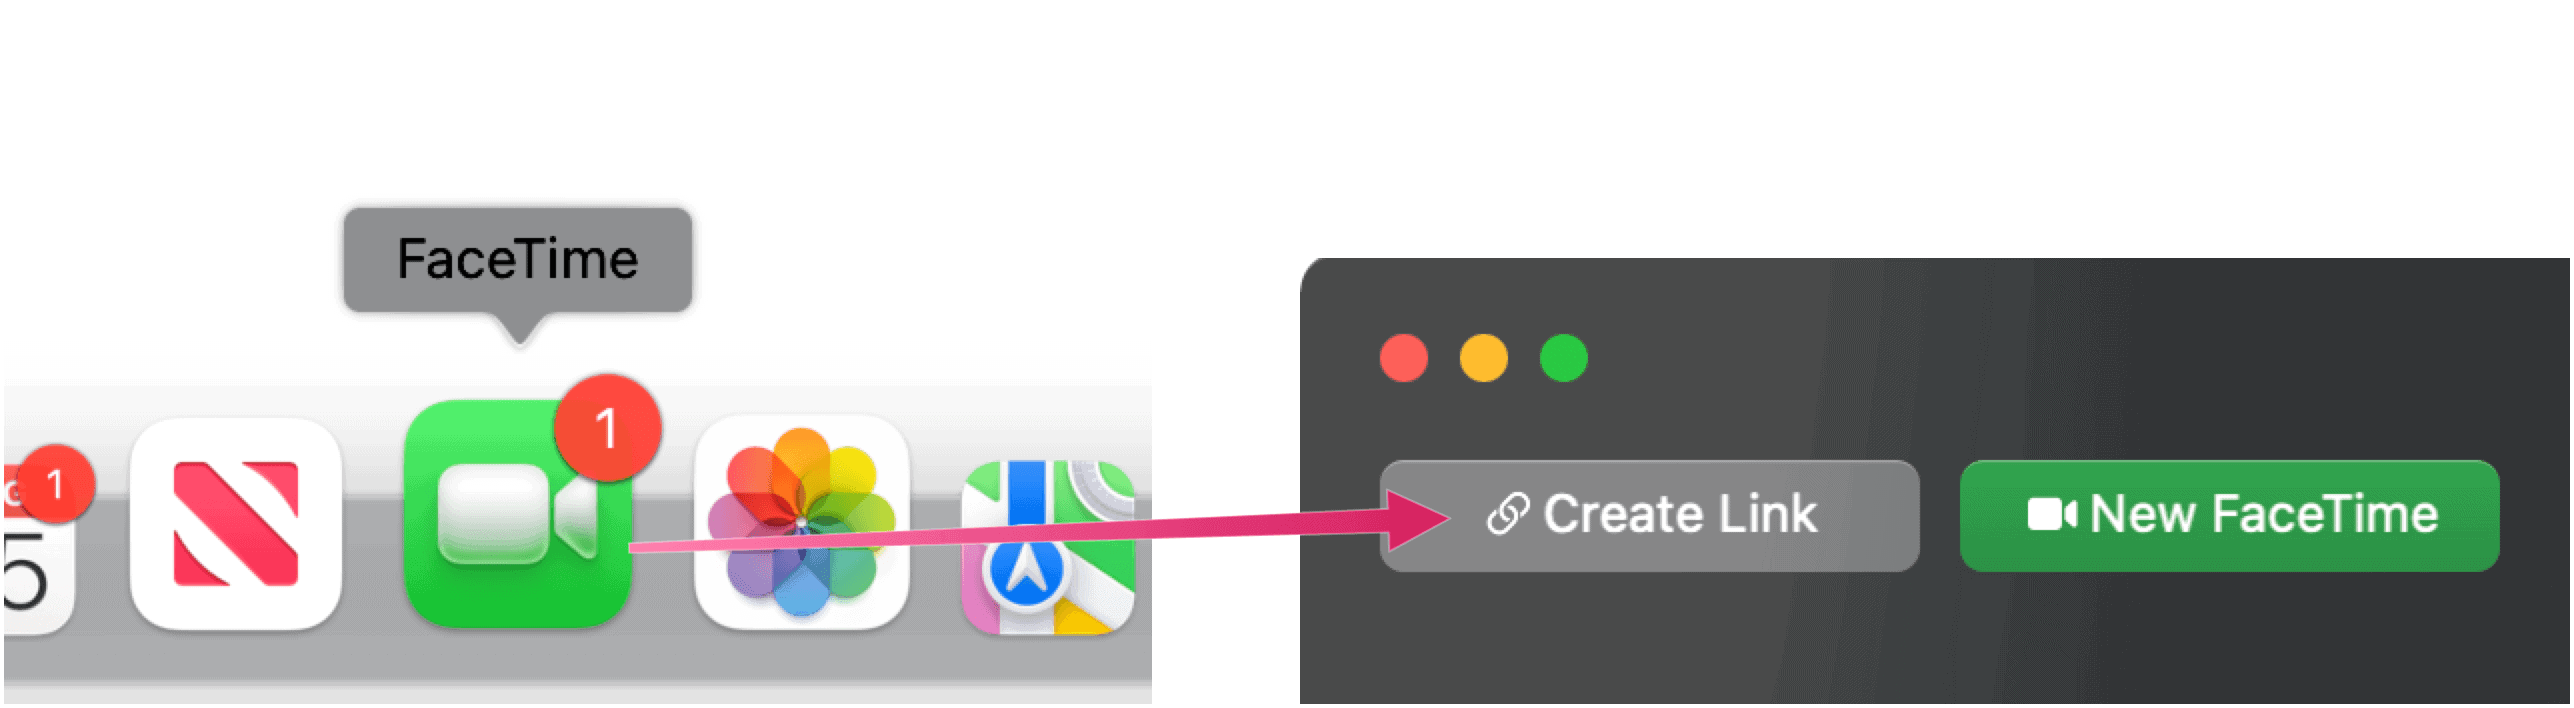 Send a FaceTime Chat Invite FaceTime Create Link on Mac